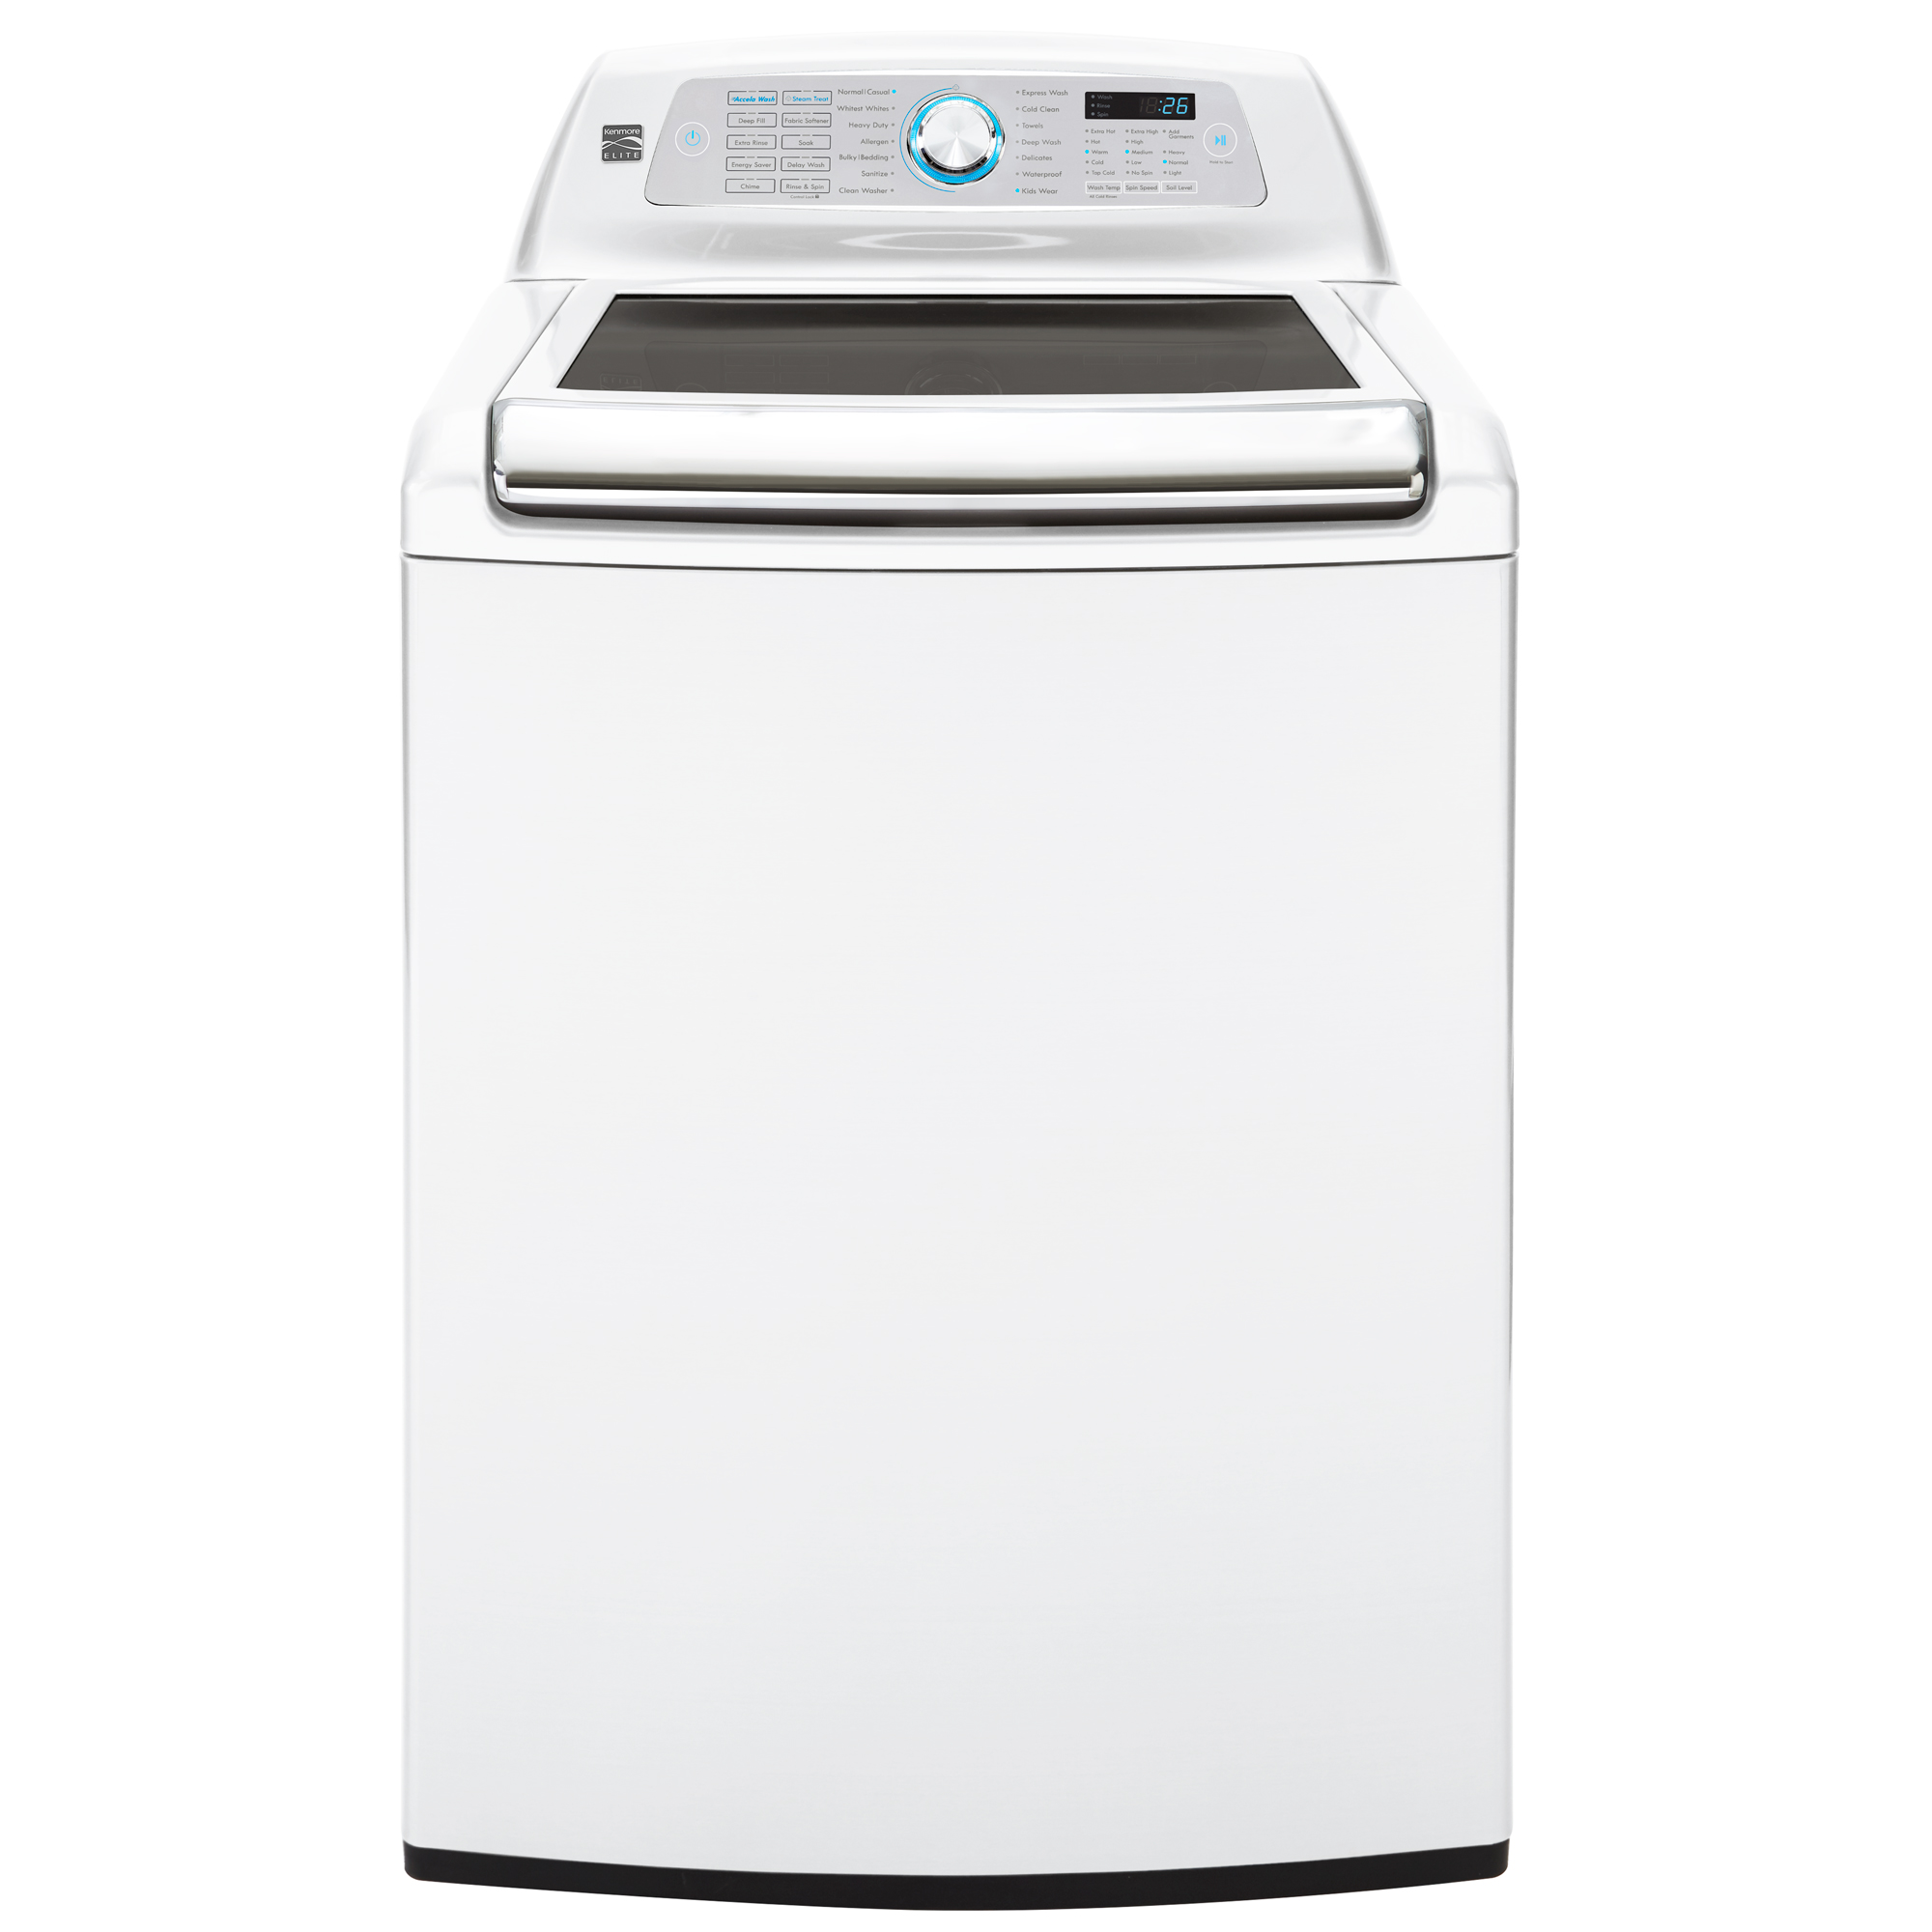 Kenmore Elite 31552 5.2 cu. ft. Top Load Washer w/Steam Treat® & Accela Wash® - White